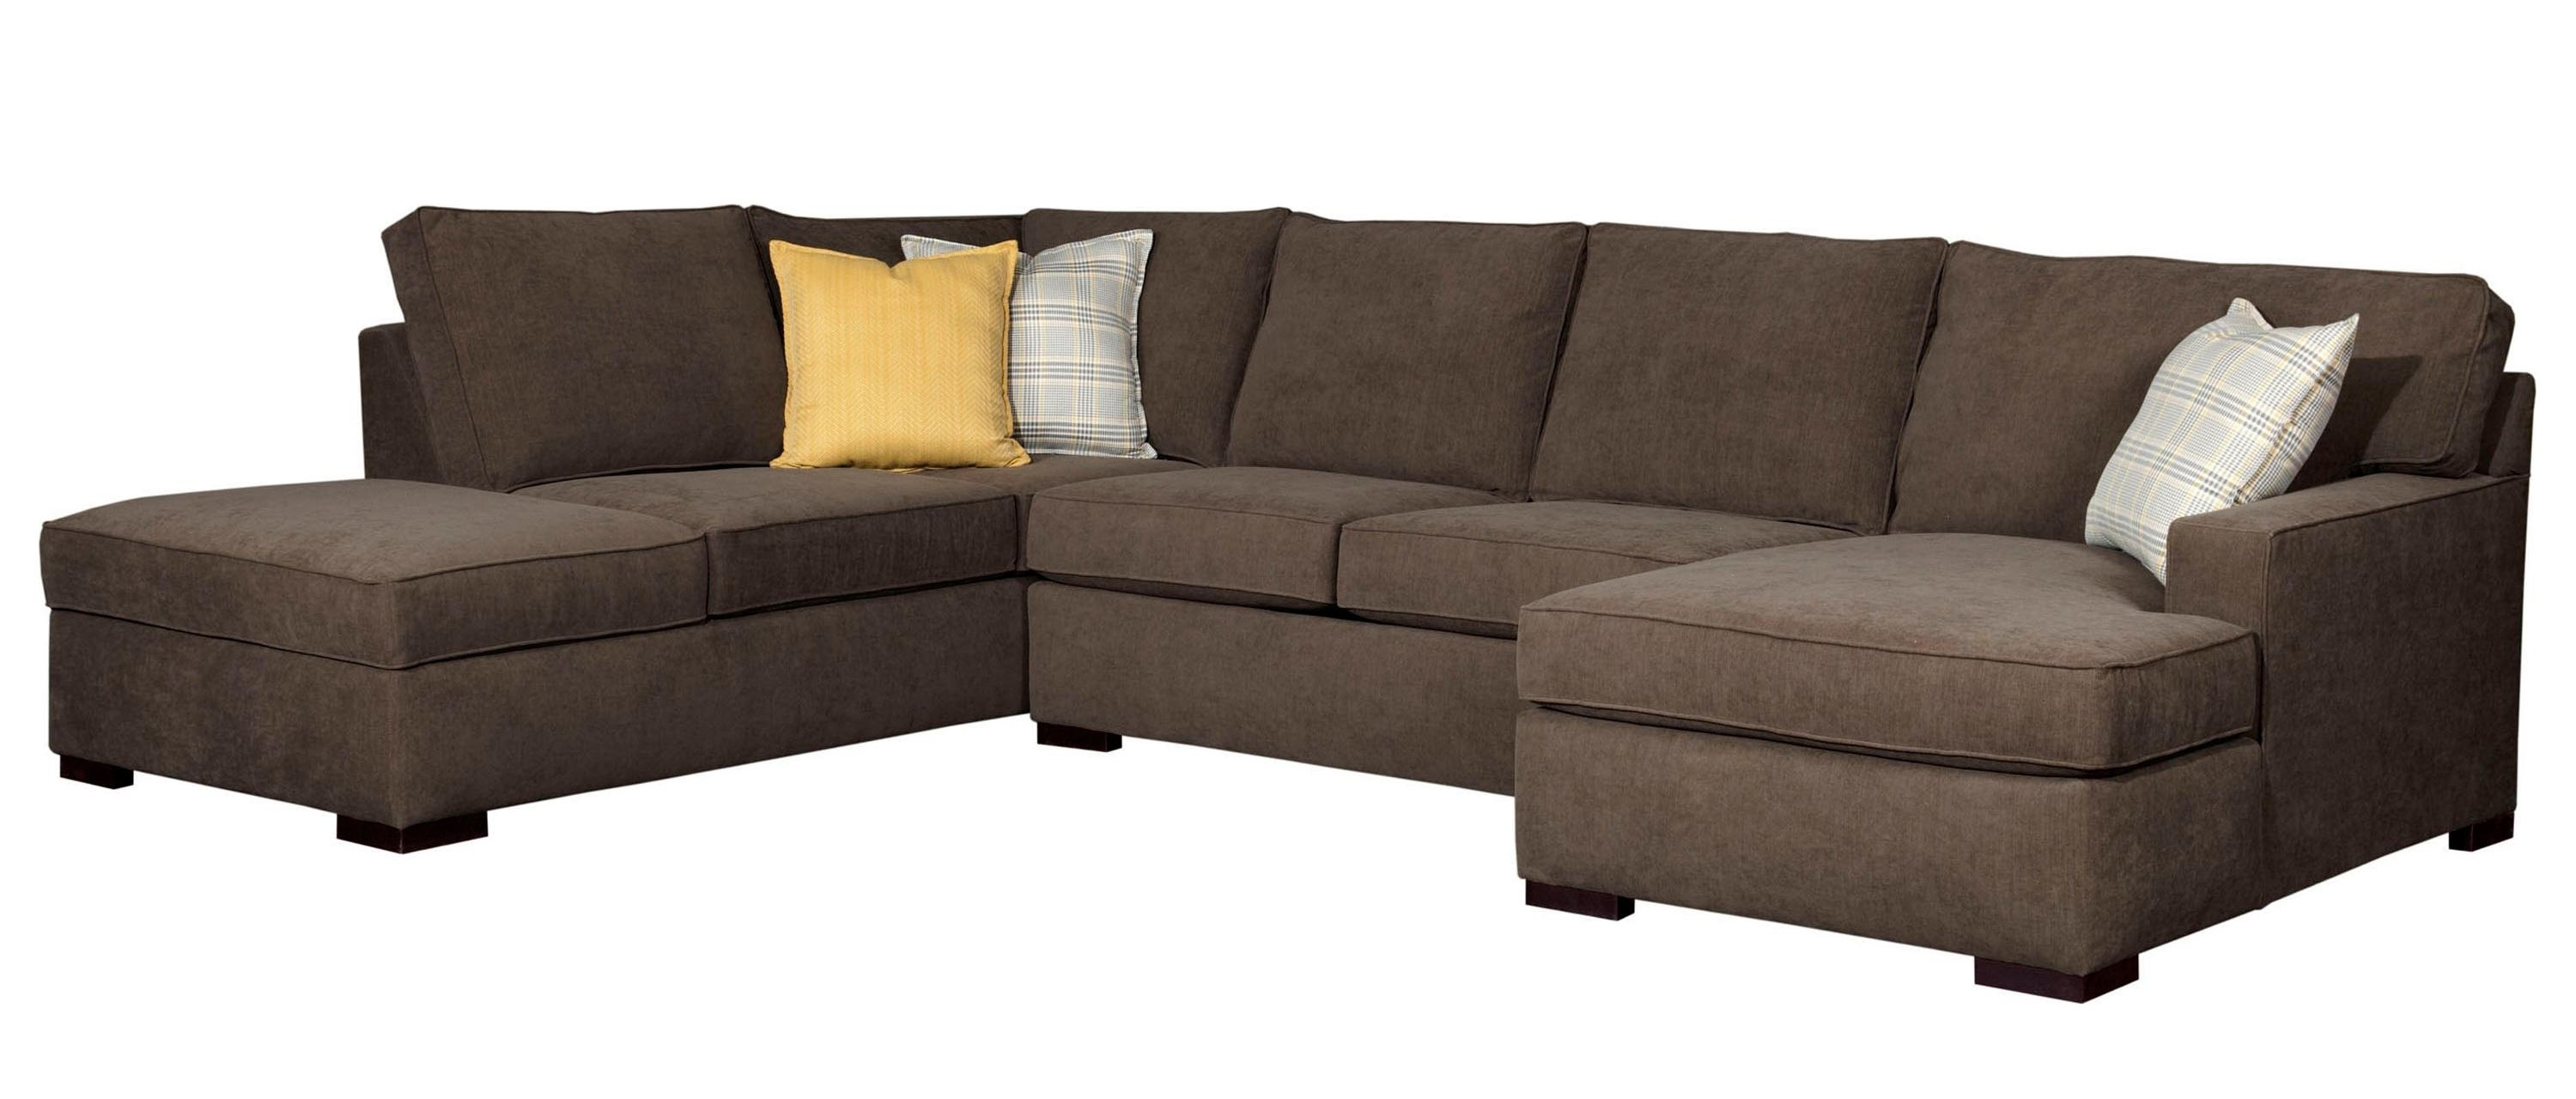 Newest Broyhill Sectional Sofas In Broyhill Furniture Raphael Contemporary Sectional Sofa With Laf (View 12 of 20)